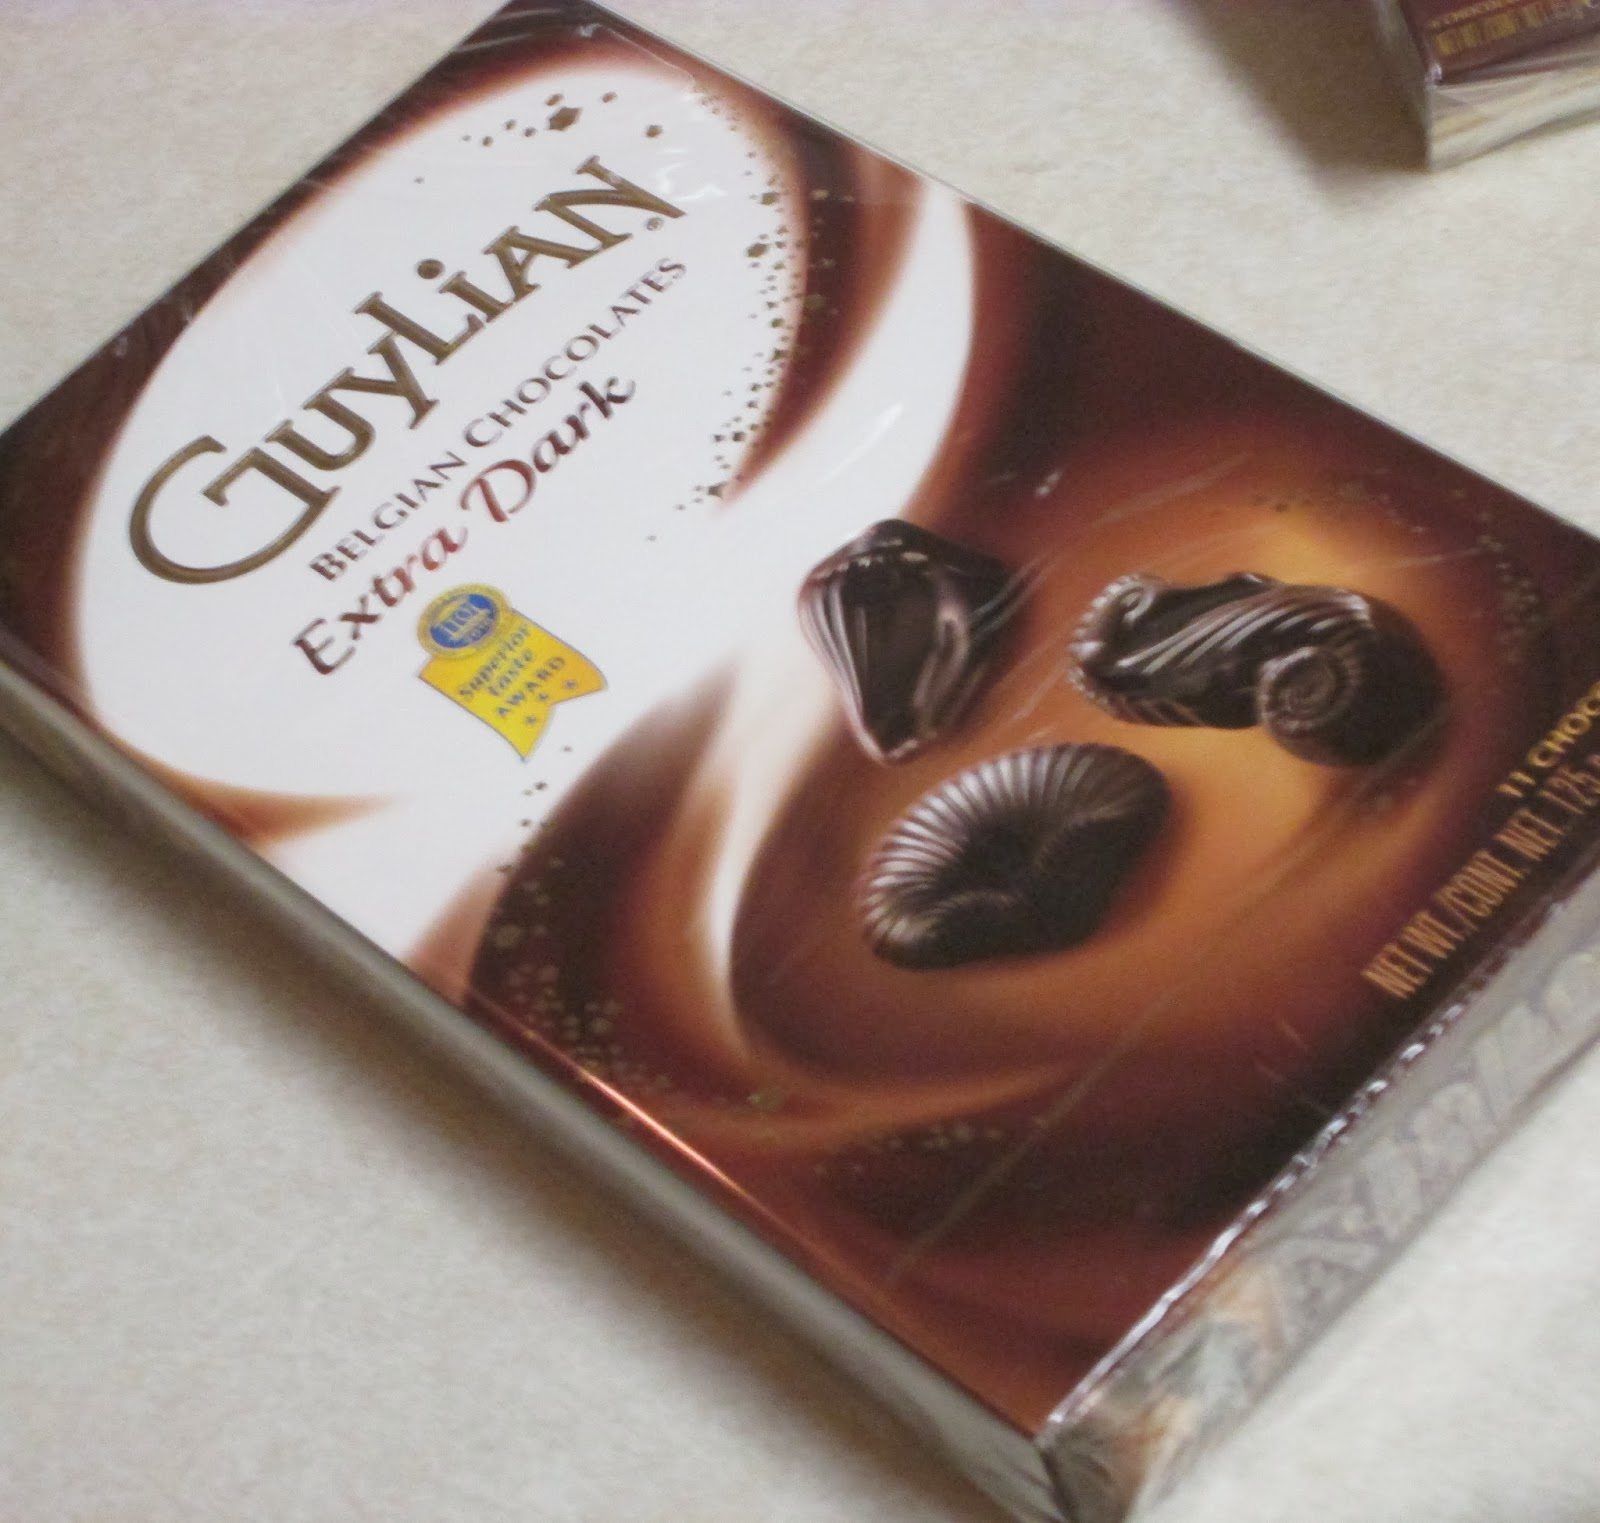 Mommie Of 2 Guylian Belgian Chocolates Review And Giveaway 11 22